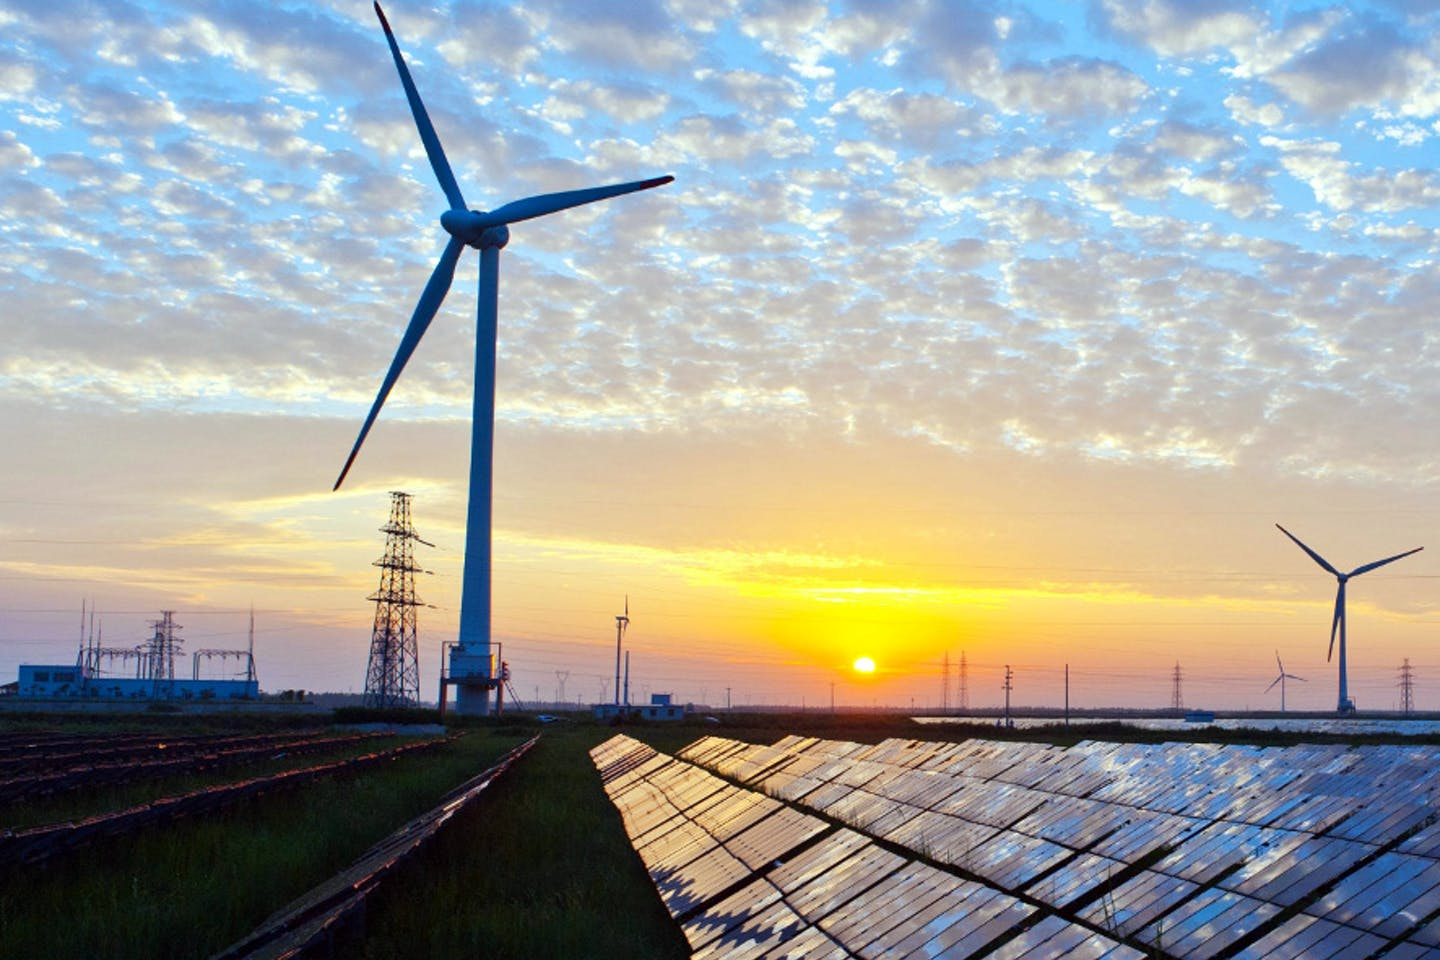 wind turbines and solar panels in asia